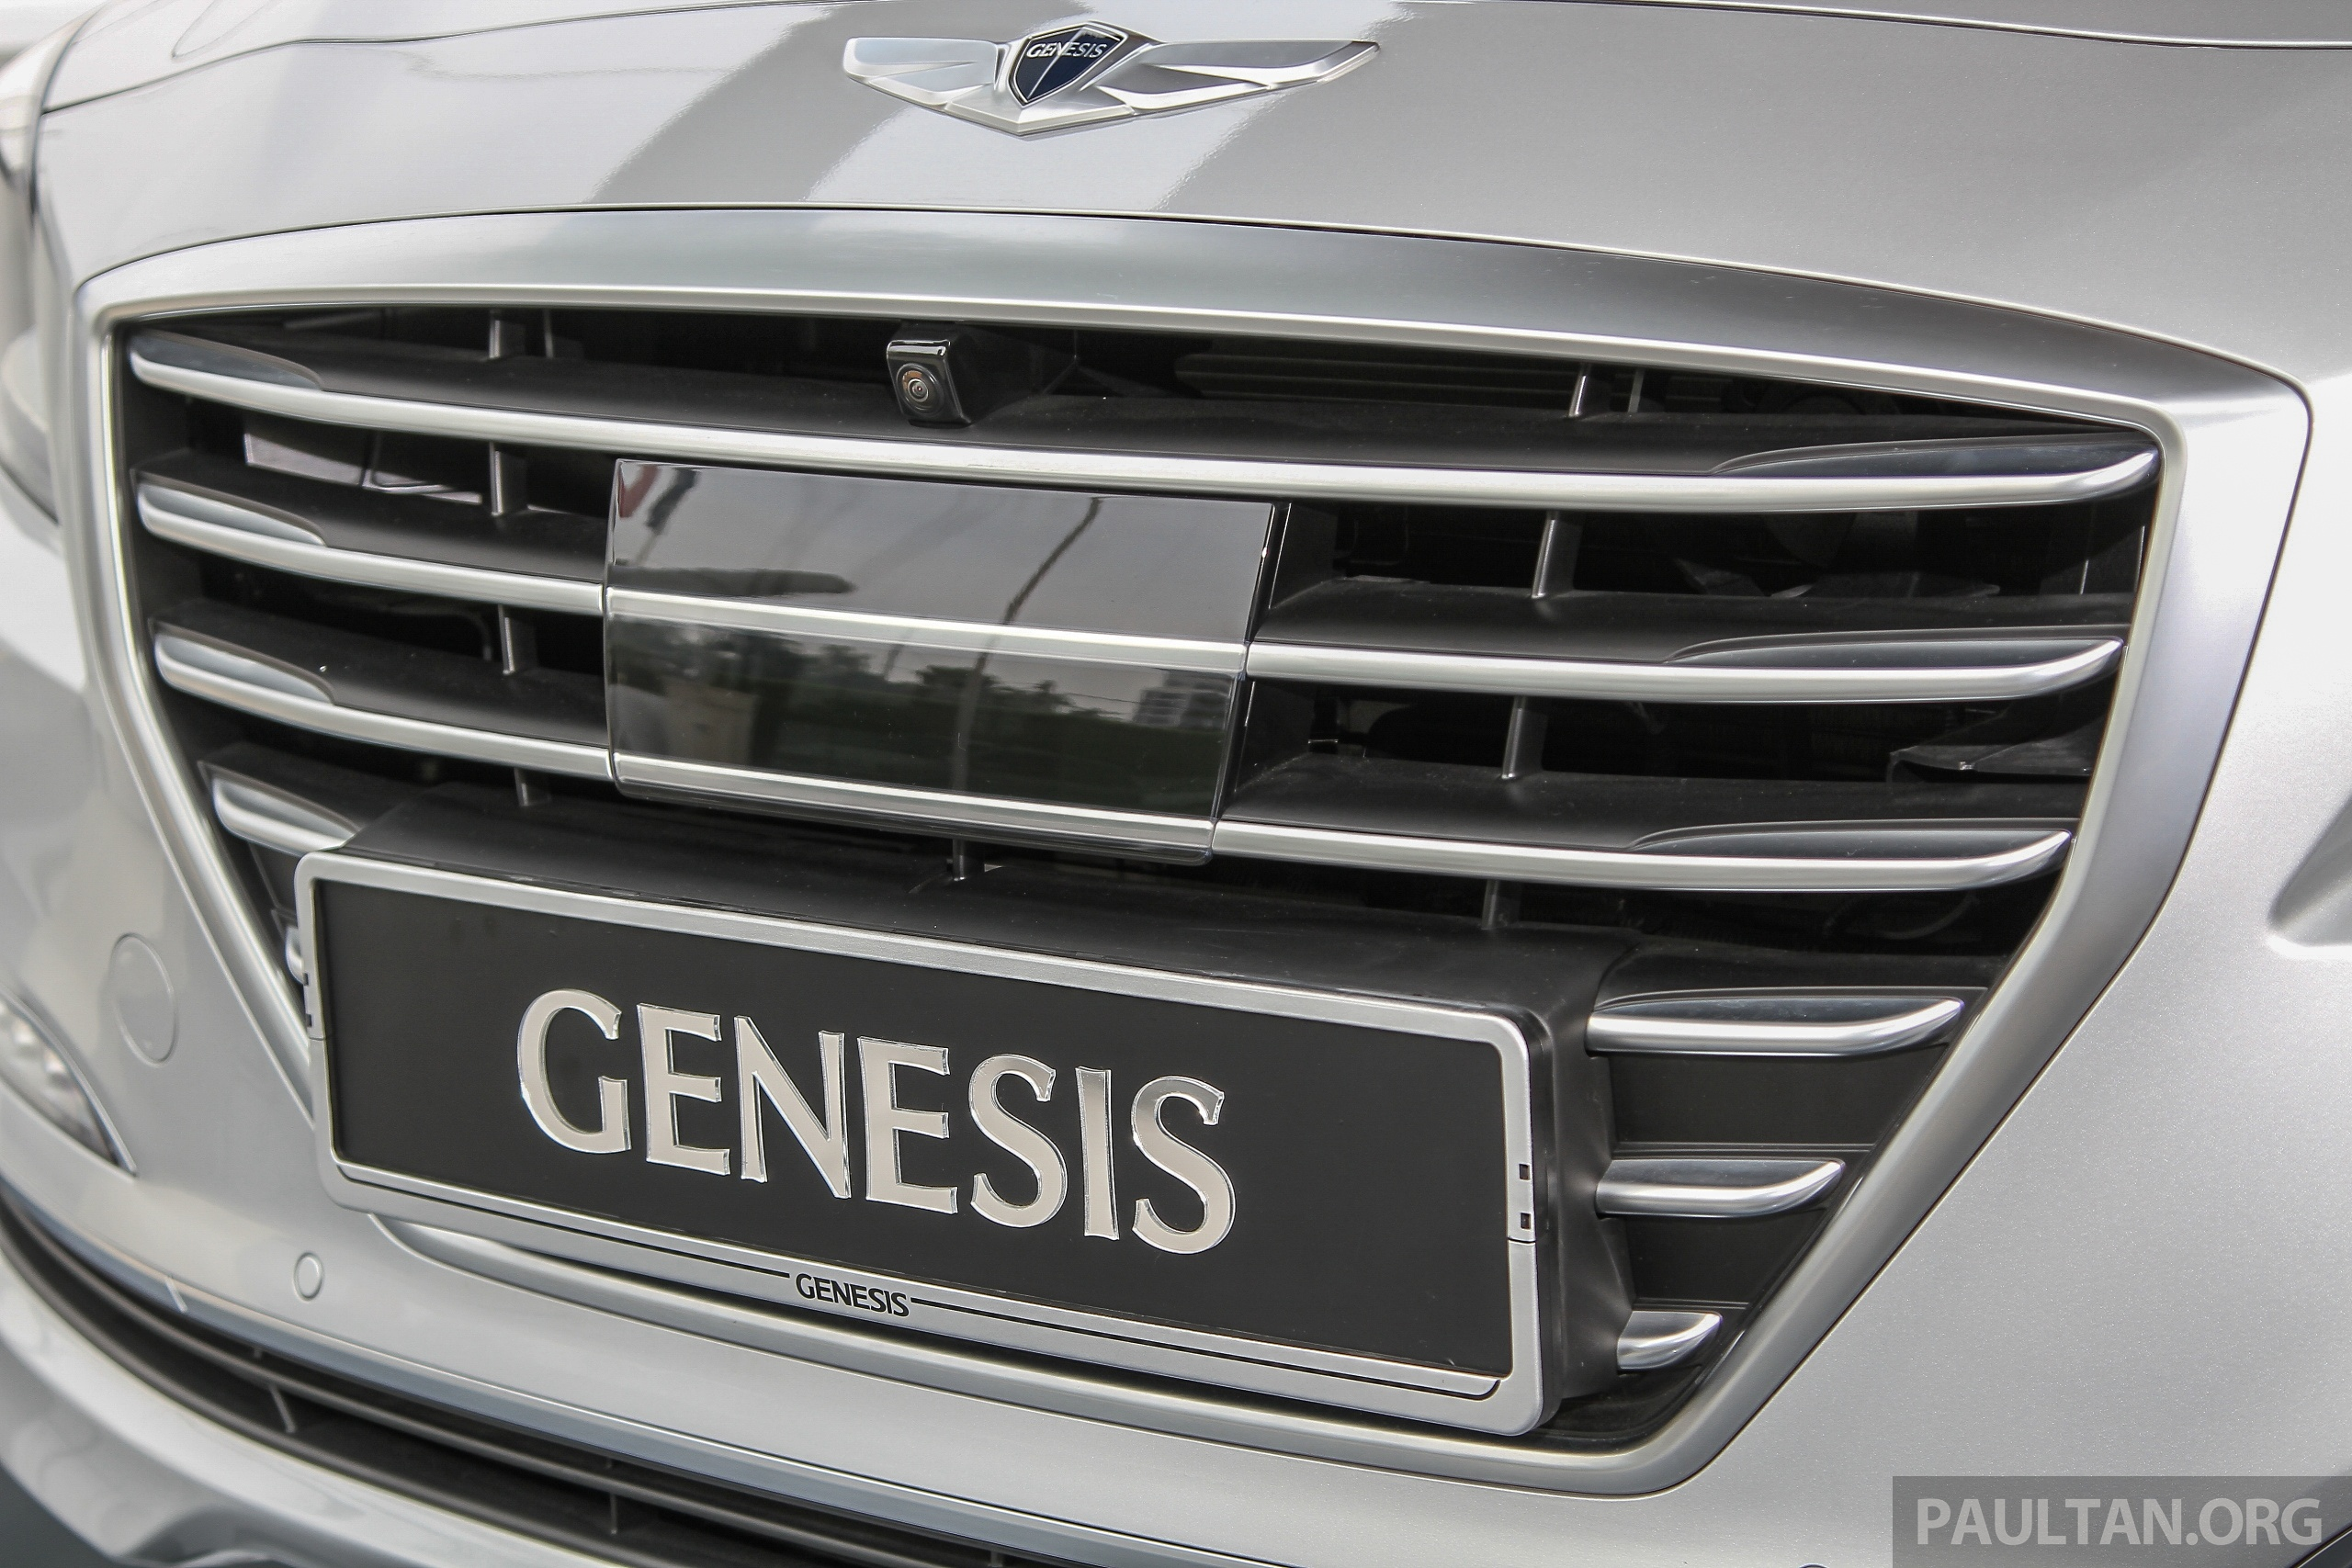 Hyundai Genesis 3 8 V6 Launched In Malaysia Rm389k Paul HD Wallpapers Download free images and photos [musssic.tk]